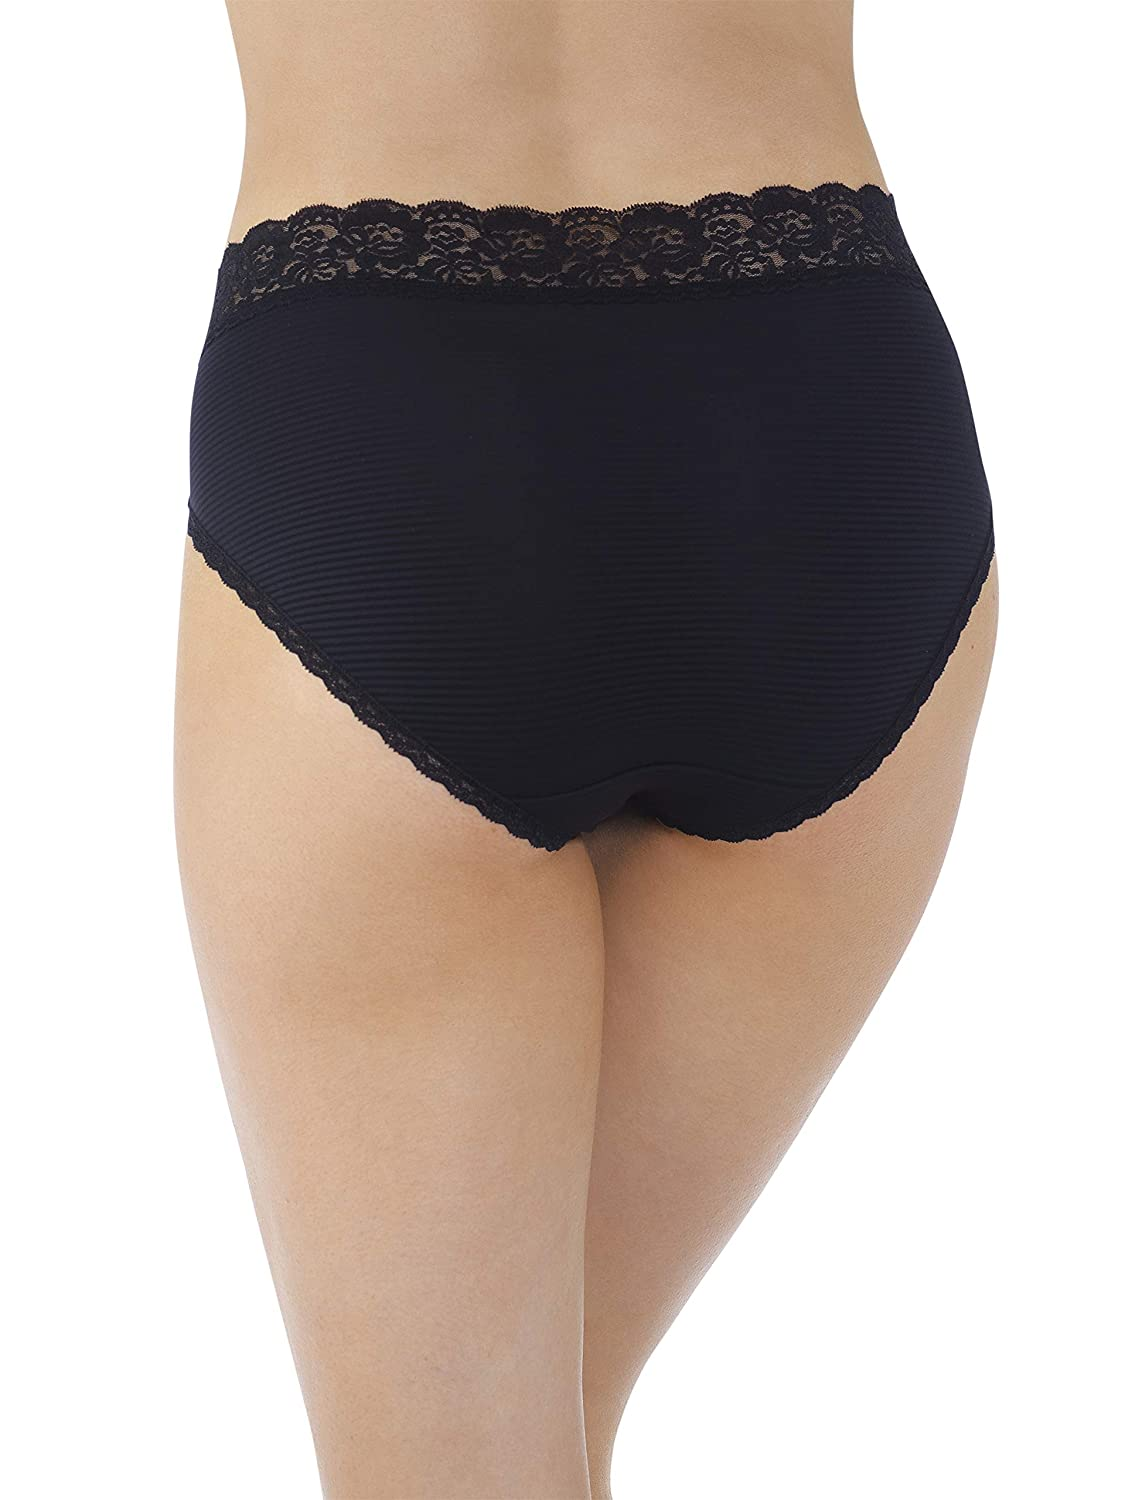 d13aea85c11 Vanity Fair Women s Flattering Lace Hi Cut Panty at Amazon Women s Clothing  store